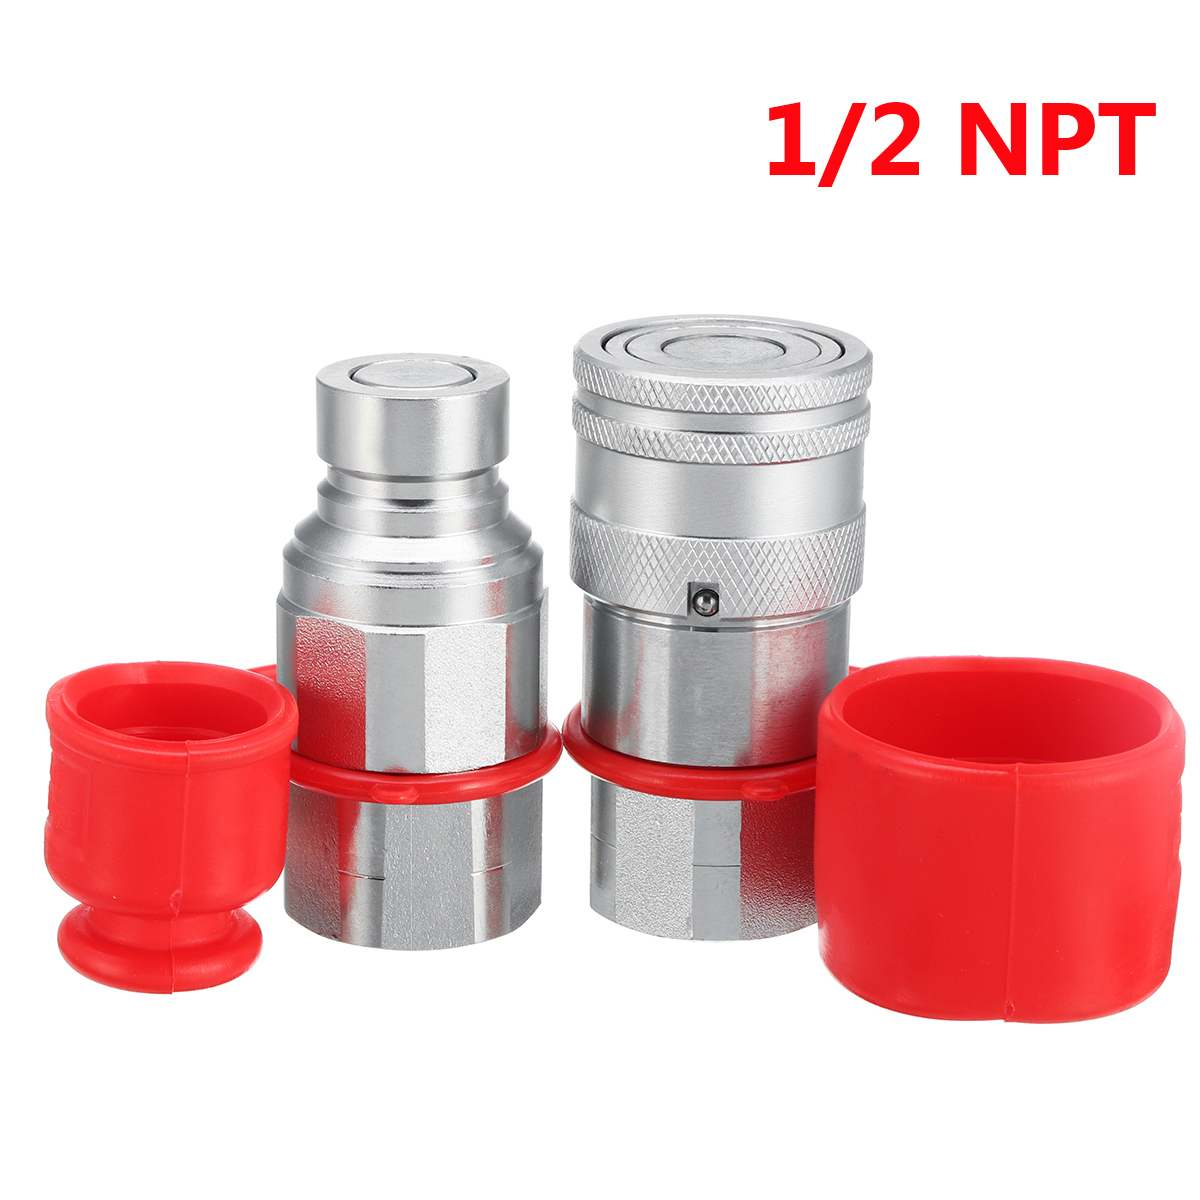 1/2 NPT Male Female Flat Face Coupler for ISO16028 Series Adapter Skid Steer Hydraulic Quick Connect Coupler Cover Coupling Set 25 32 female threaded pneumatic quick connect coupling